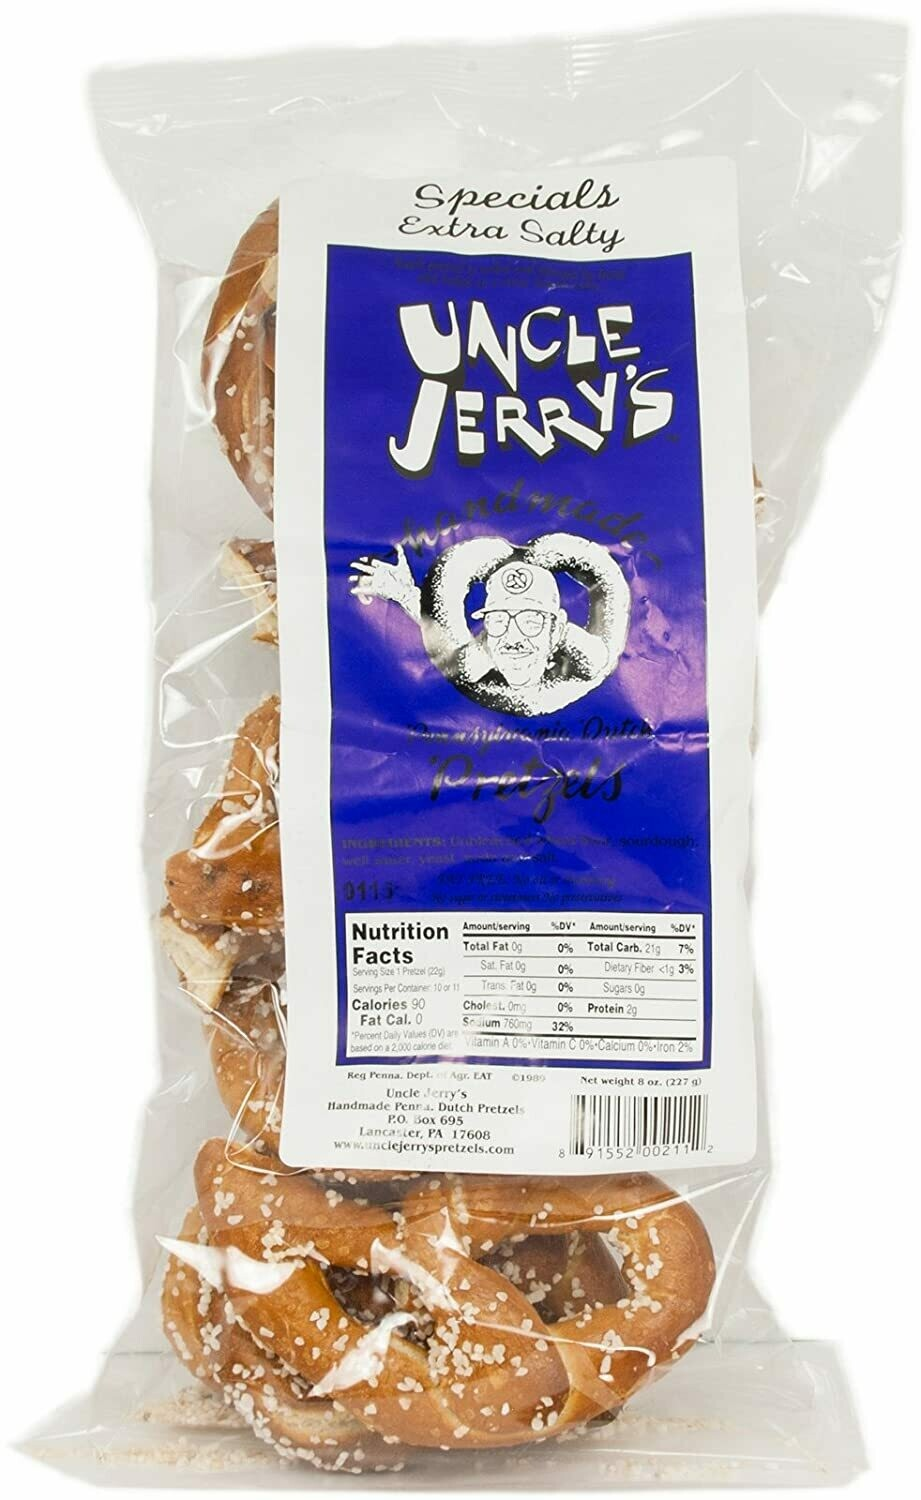 Uncle Jerry's Ex Salty Pretzel